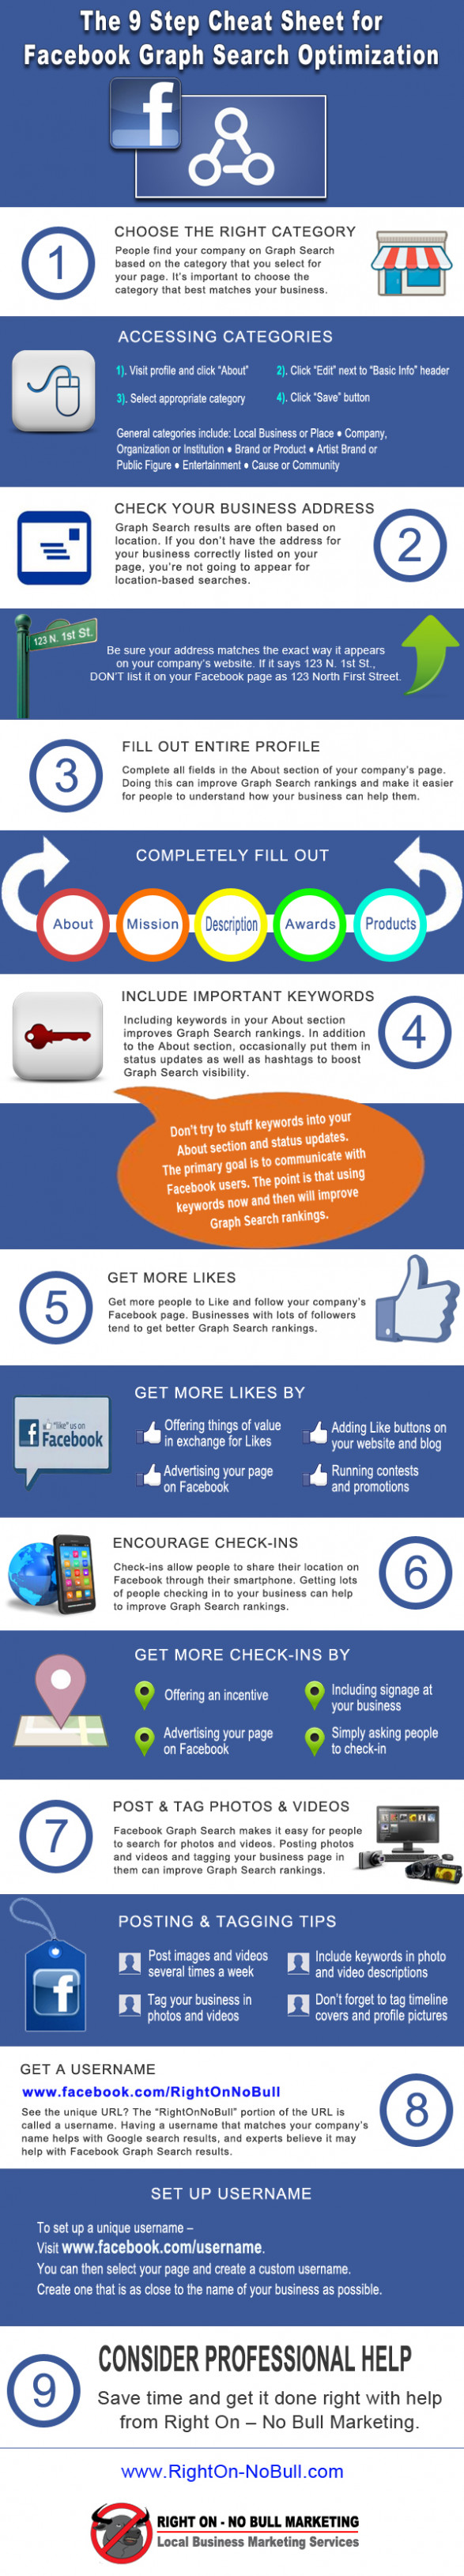 The 9 Step Cheat Sheet for Facebook Graph Search Optimization